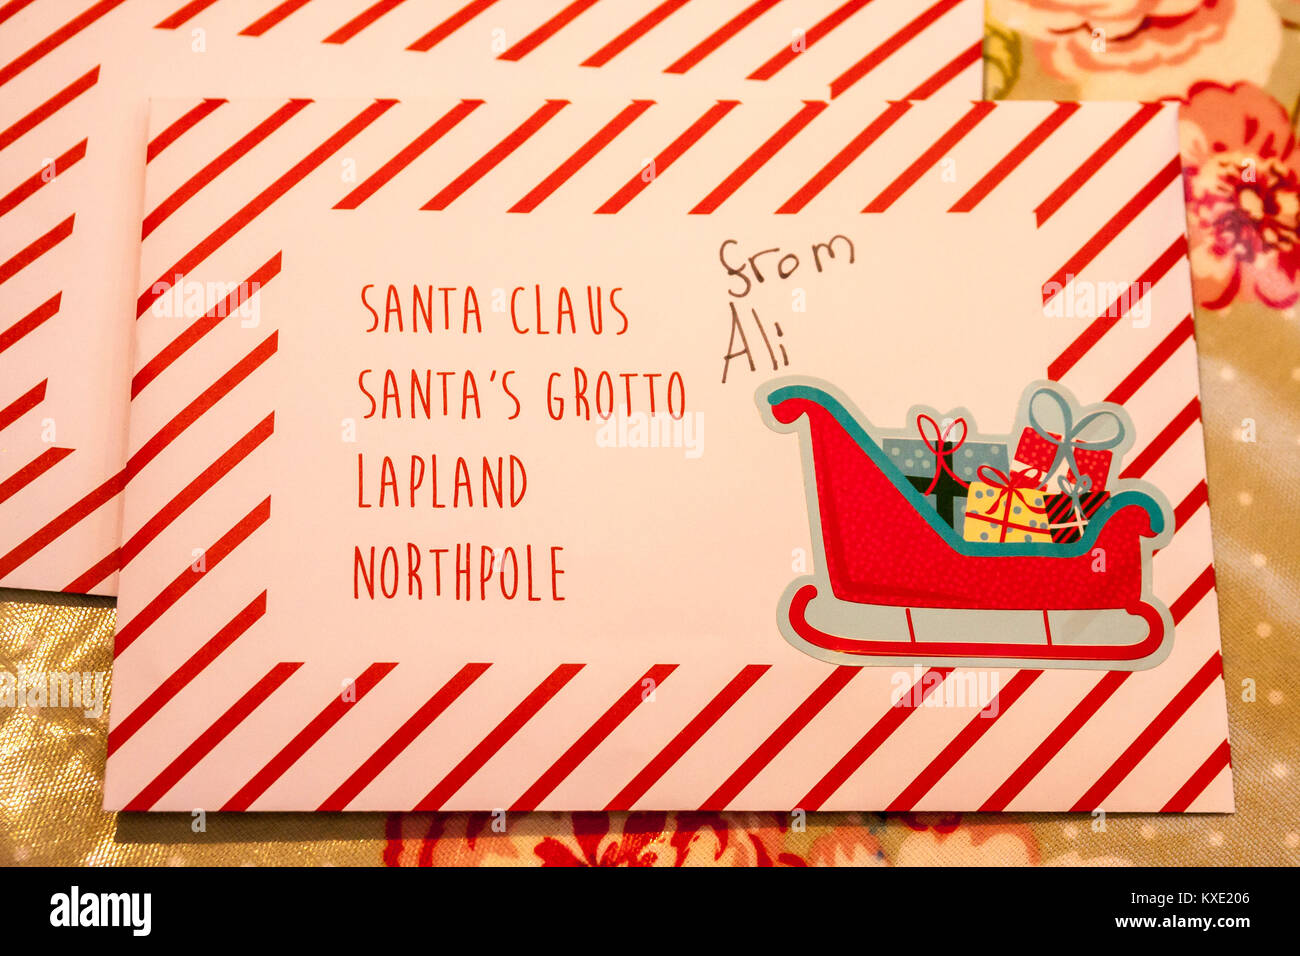 Dear Santa Letter Stock Photos  Dear Santa Letter Stock Images  Alamy